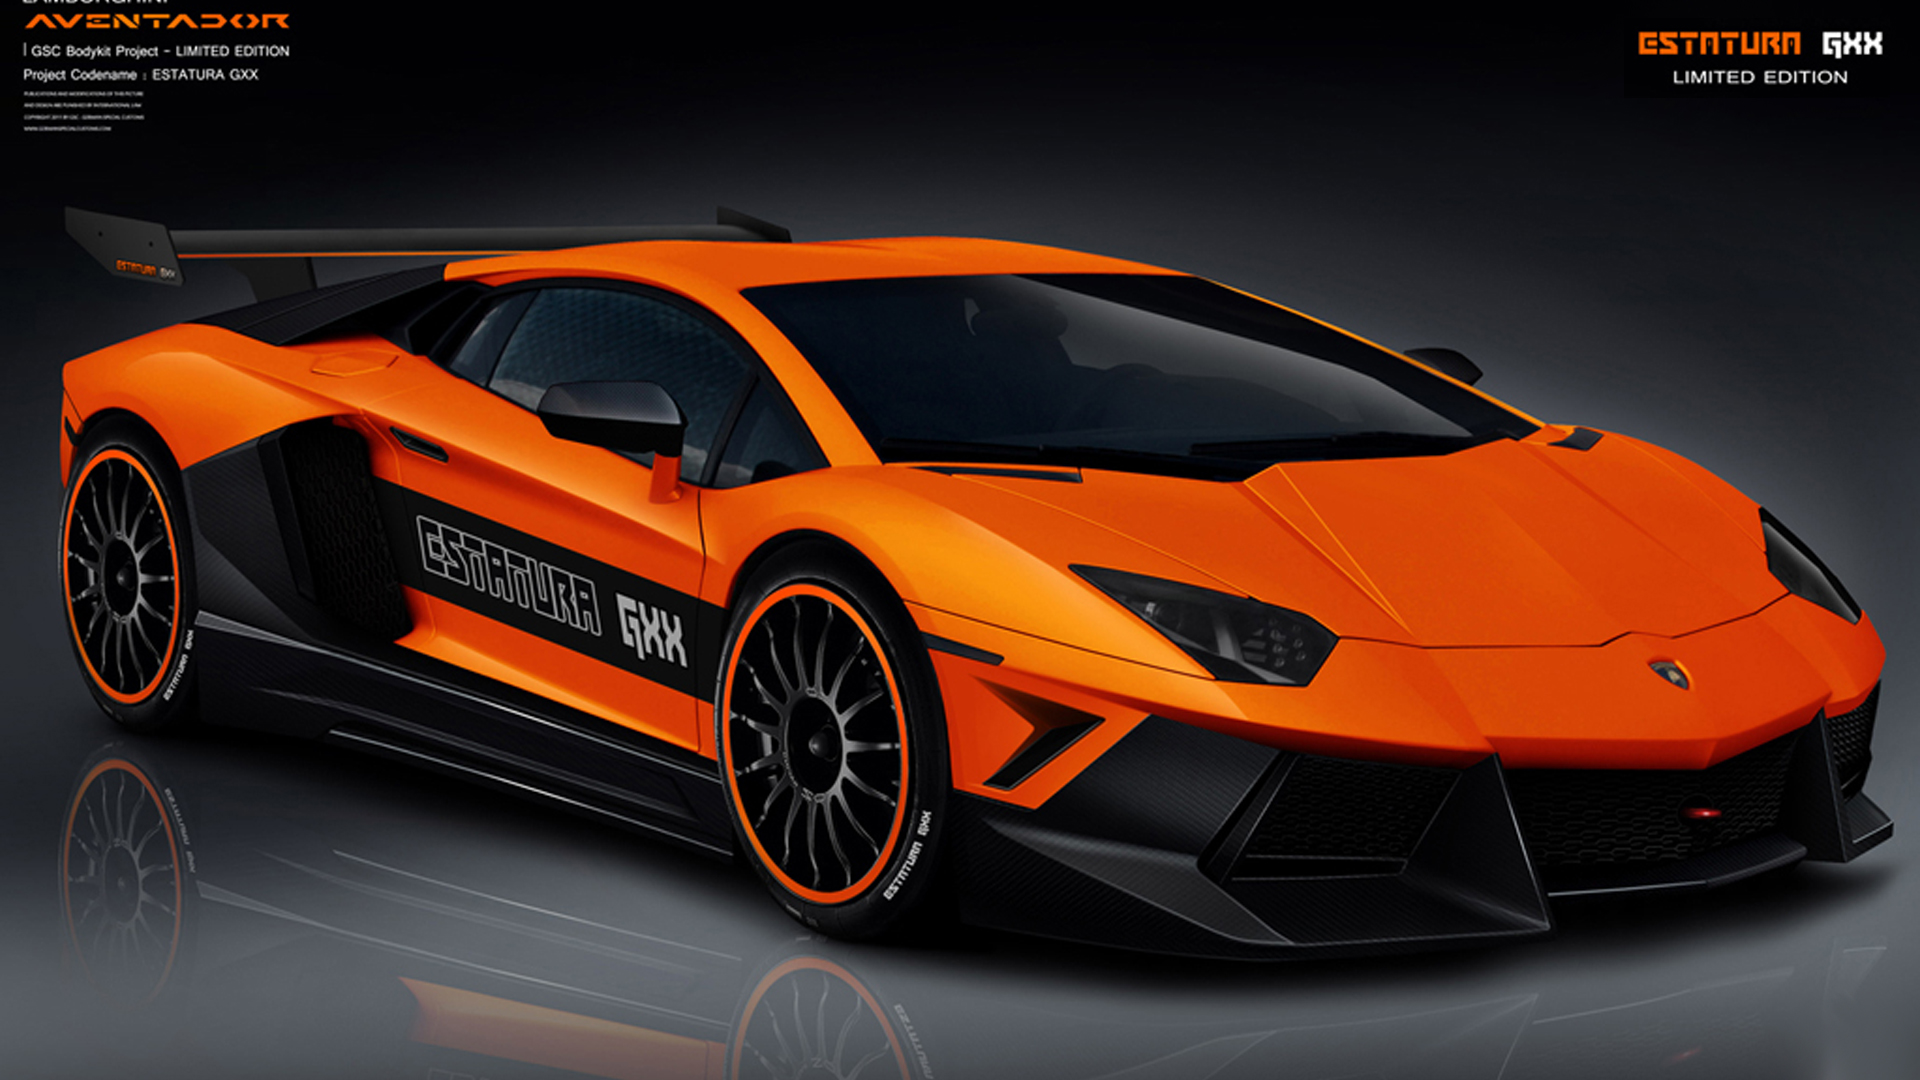 lamborghini aventador wallpapers a24 - hd background